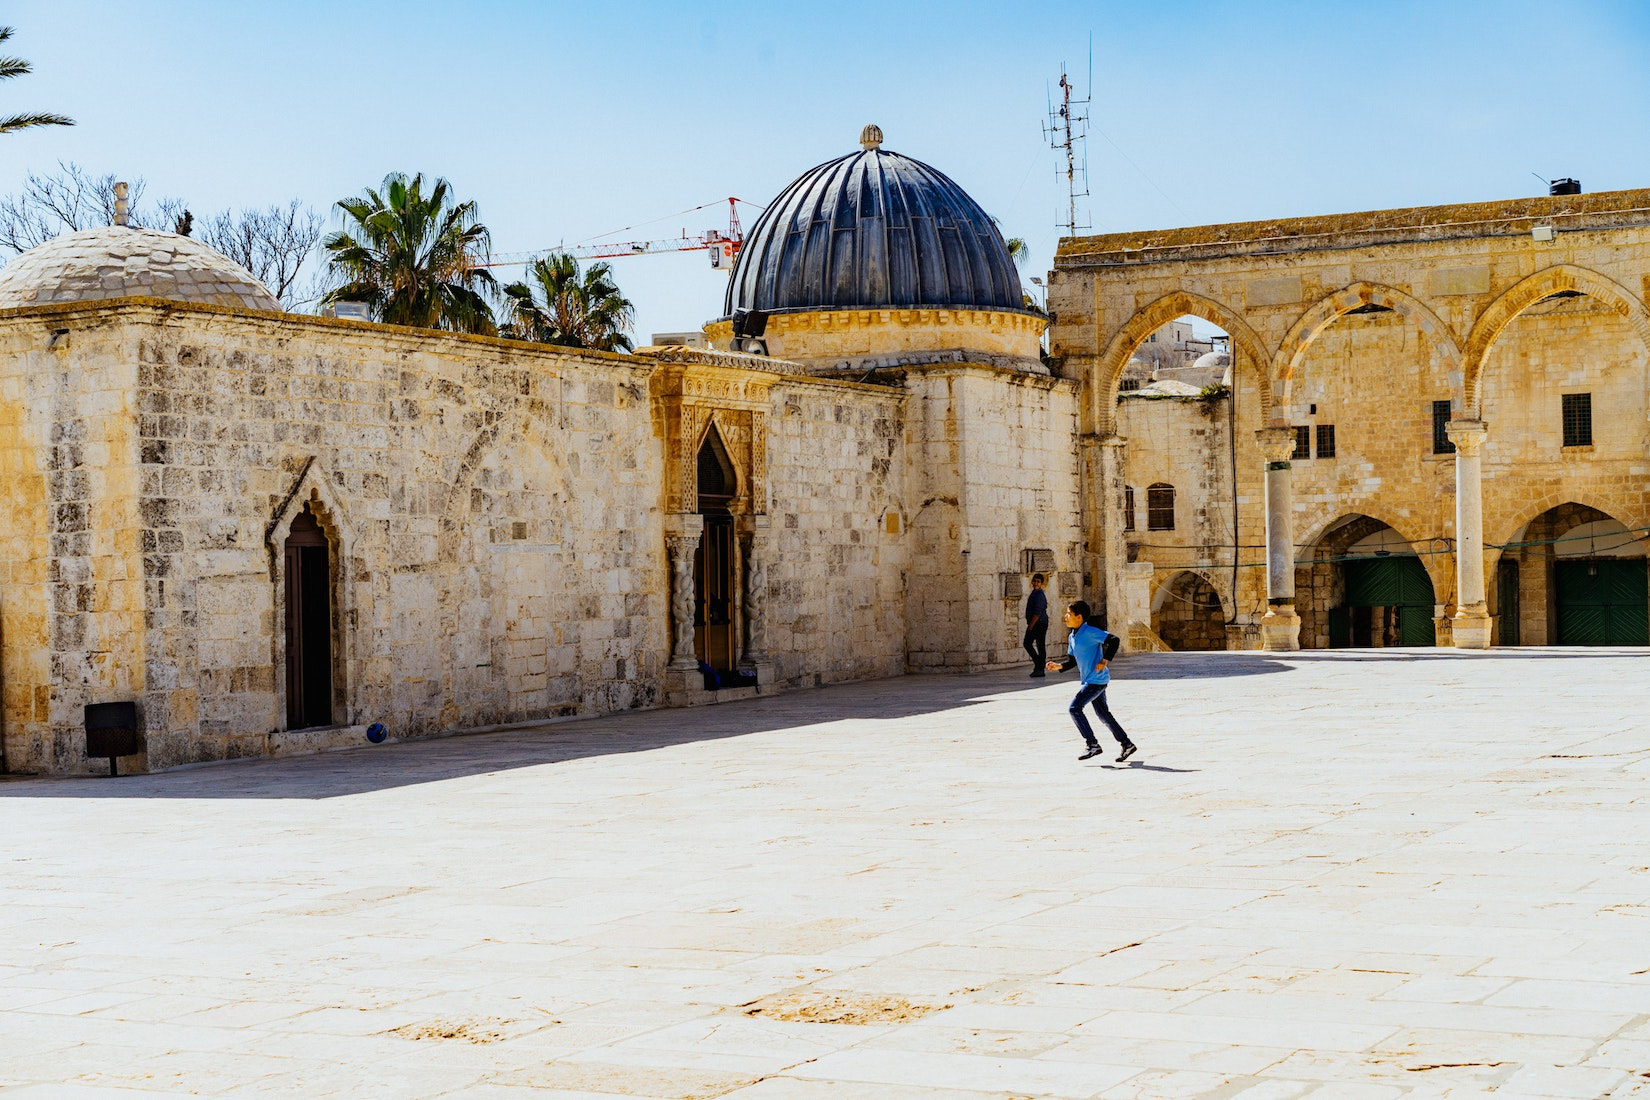 A boy playing ball at the Dome of the Rock in Jerusalem, Israel